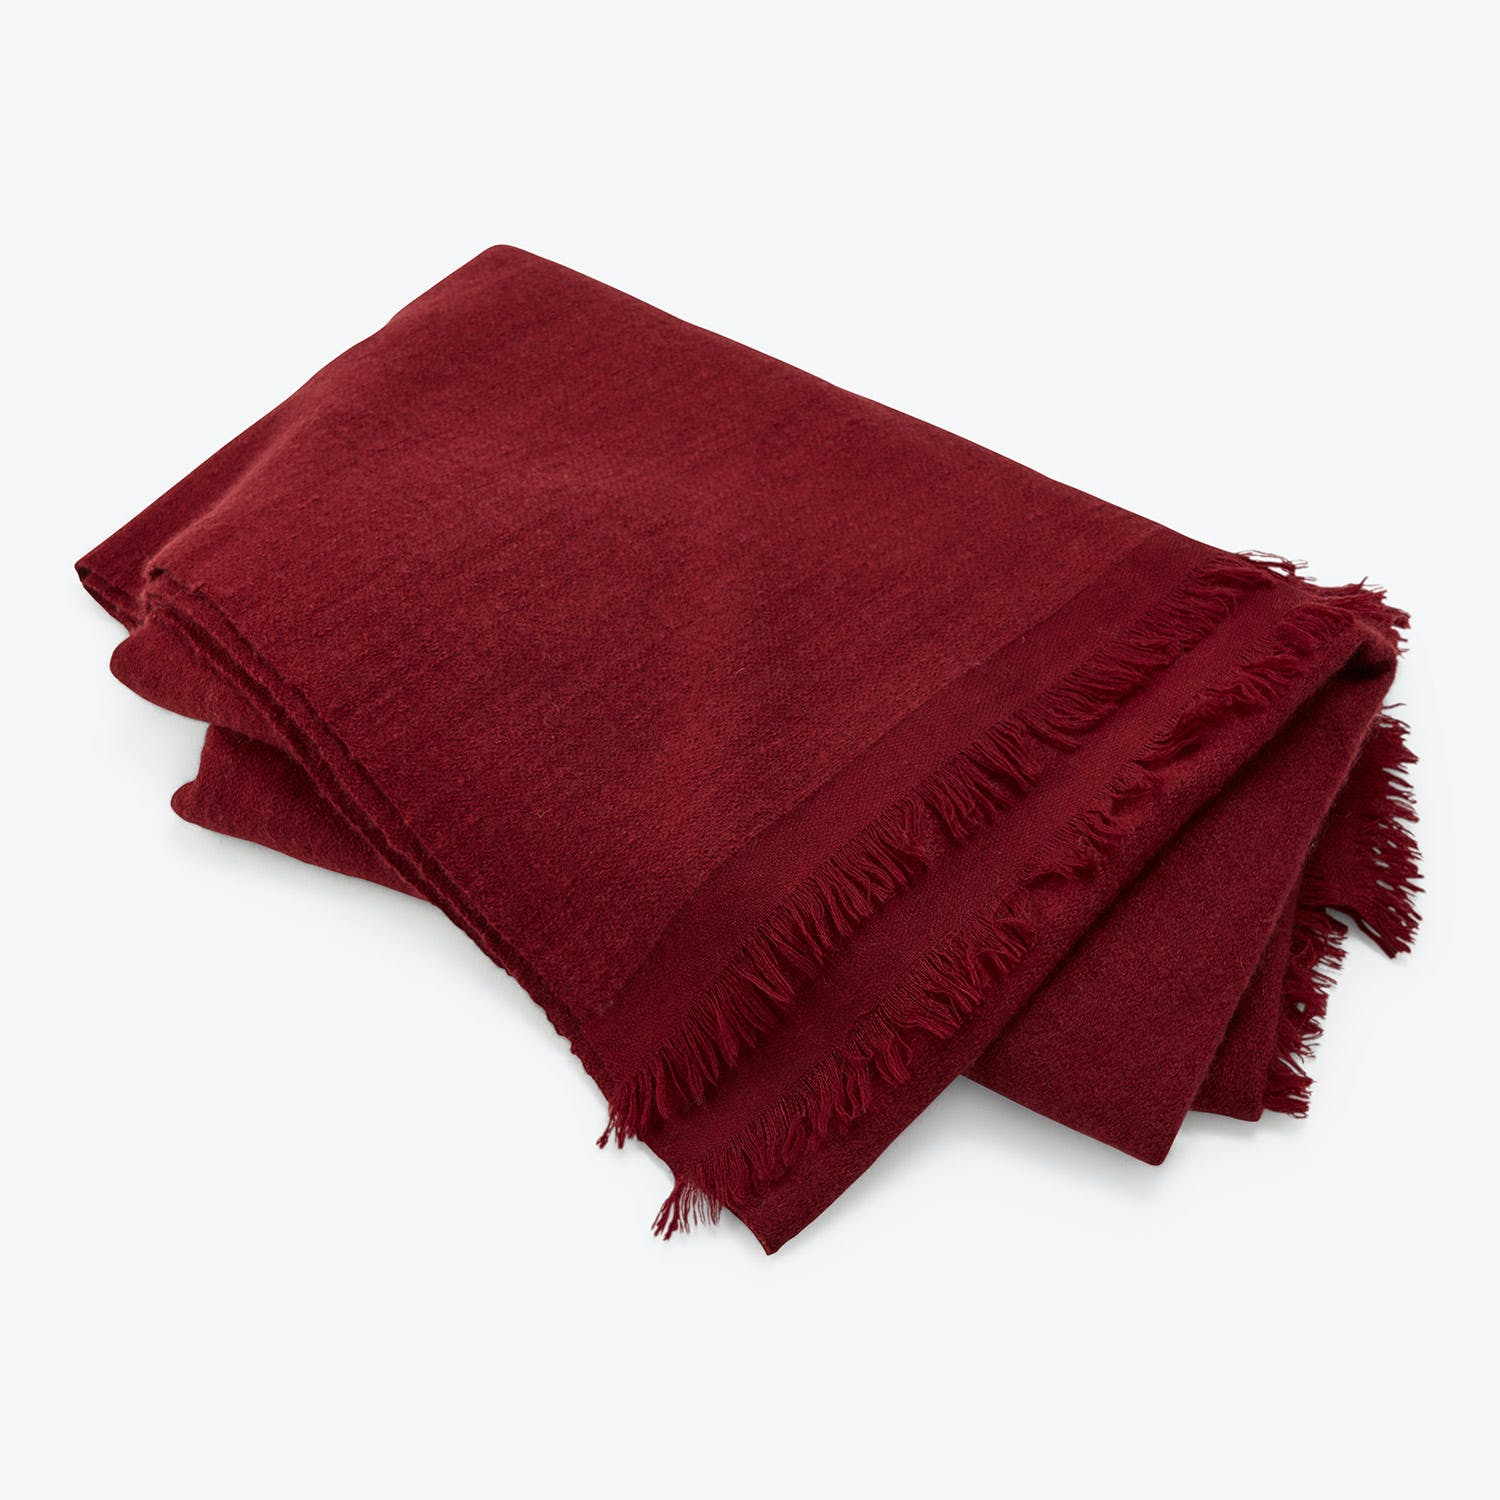 From The Road Pana Throw Maroon